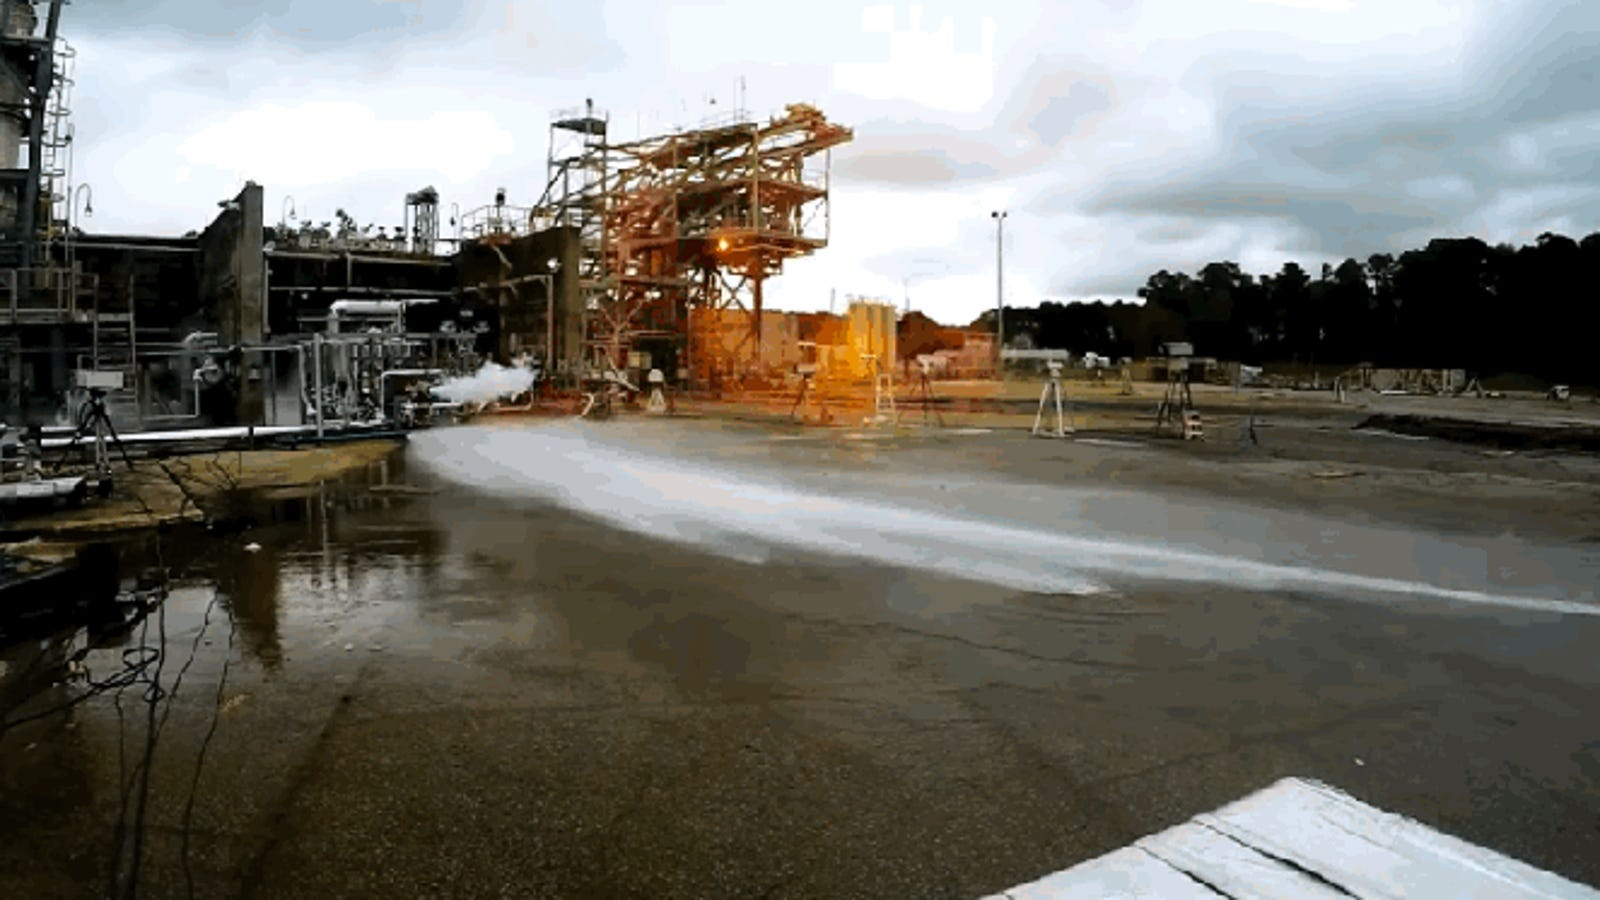 NASA's 3D-Printed Rocket Engine Spews Fire and 20,000 Pounds of Thrust